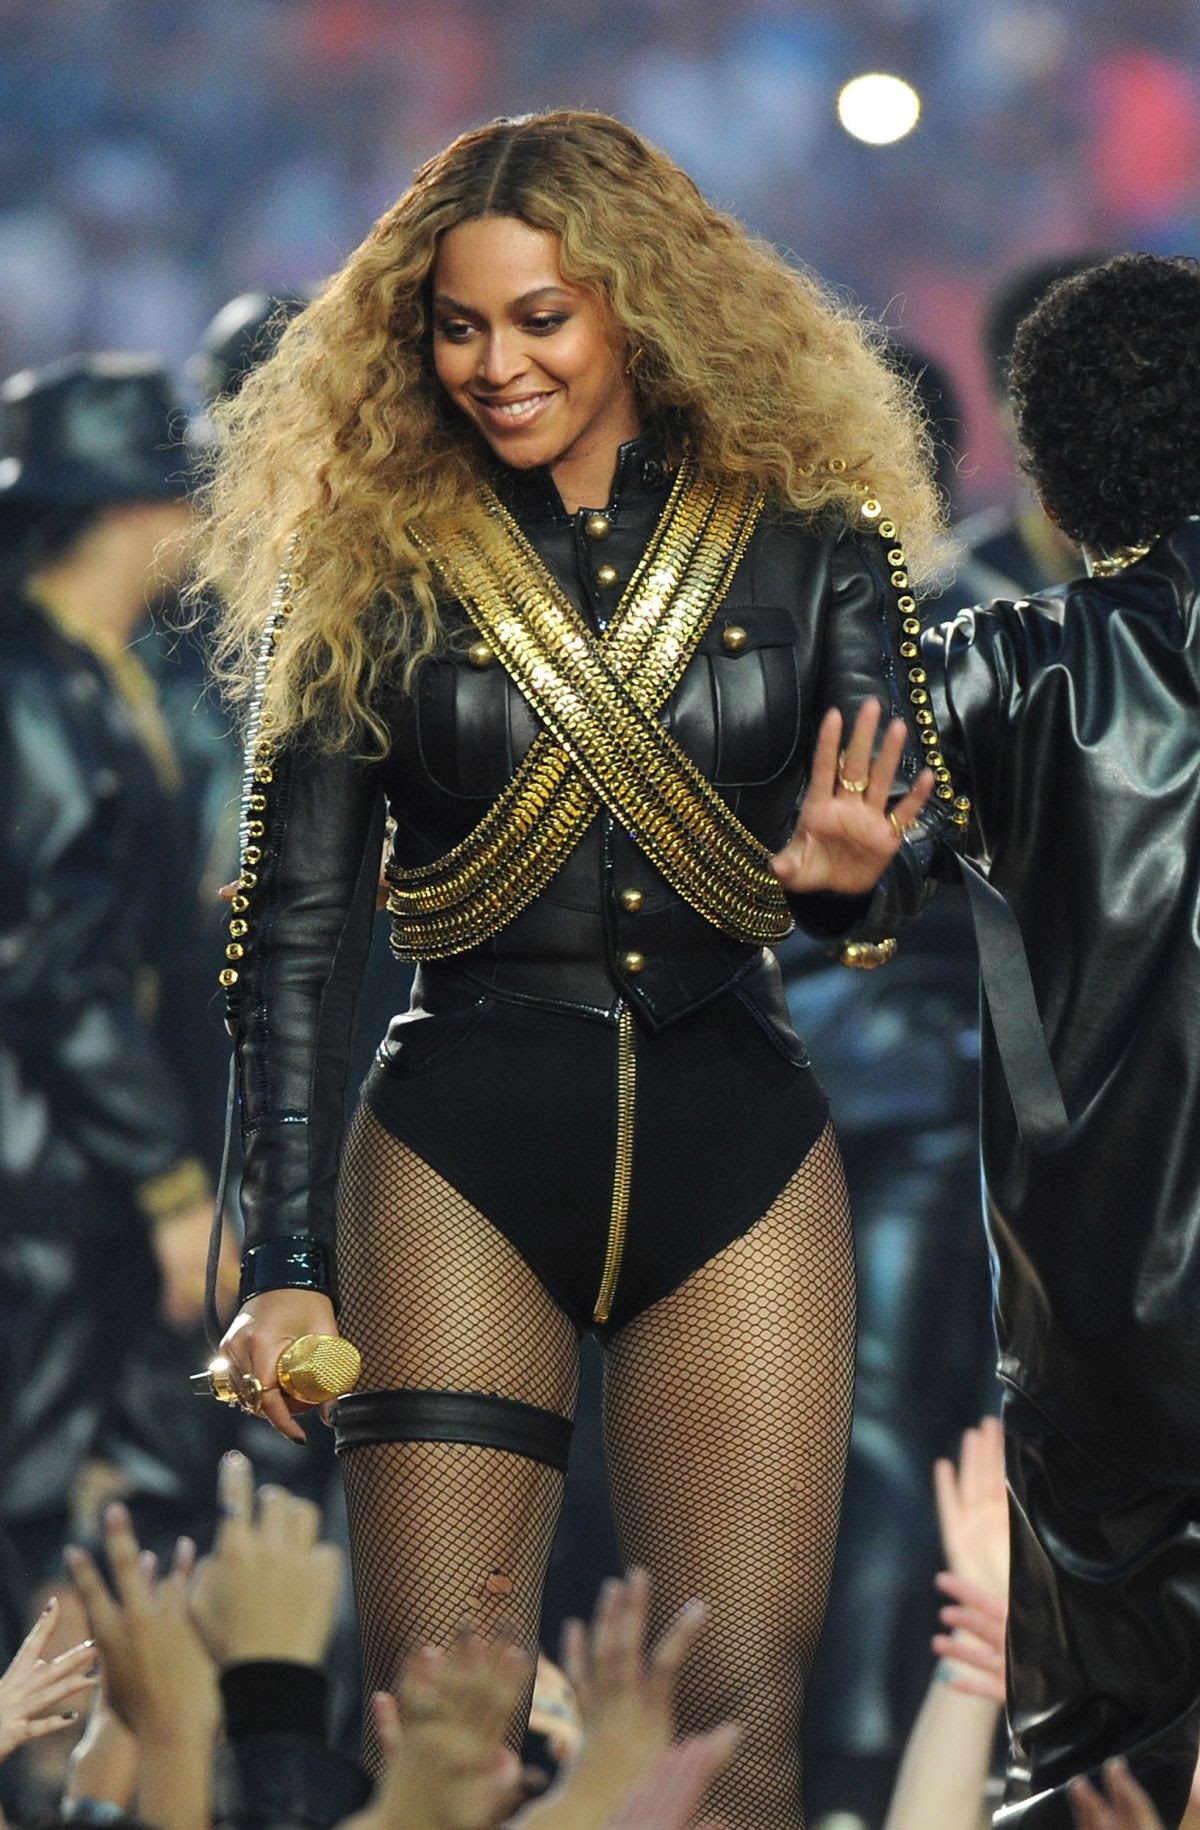 BEYONCE KNOWLES Performs at Pepsi Super Bowl 50 Halftime Show in Santa Clara 02/07/2016